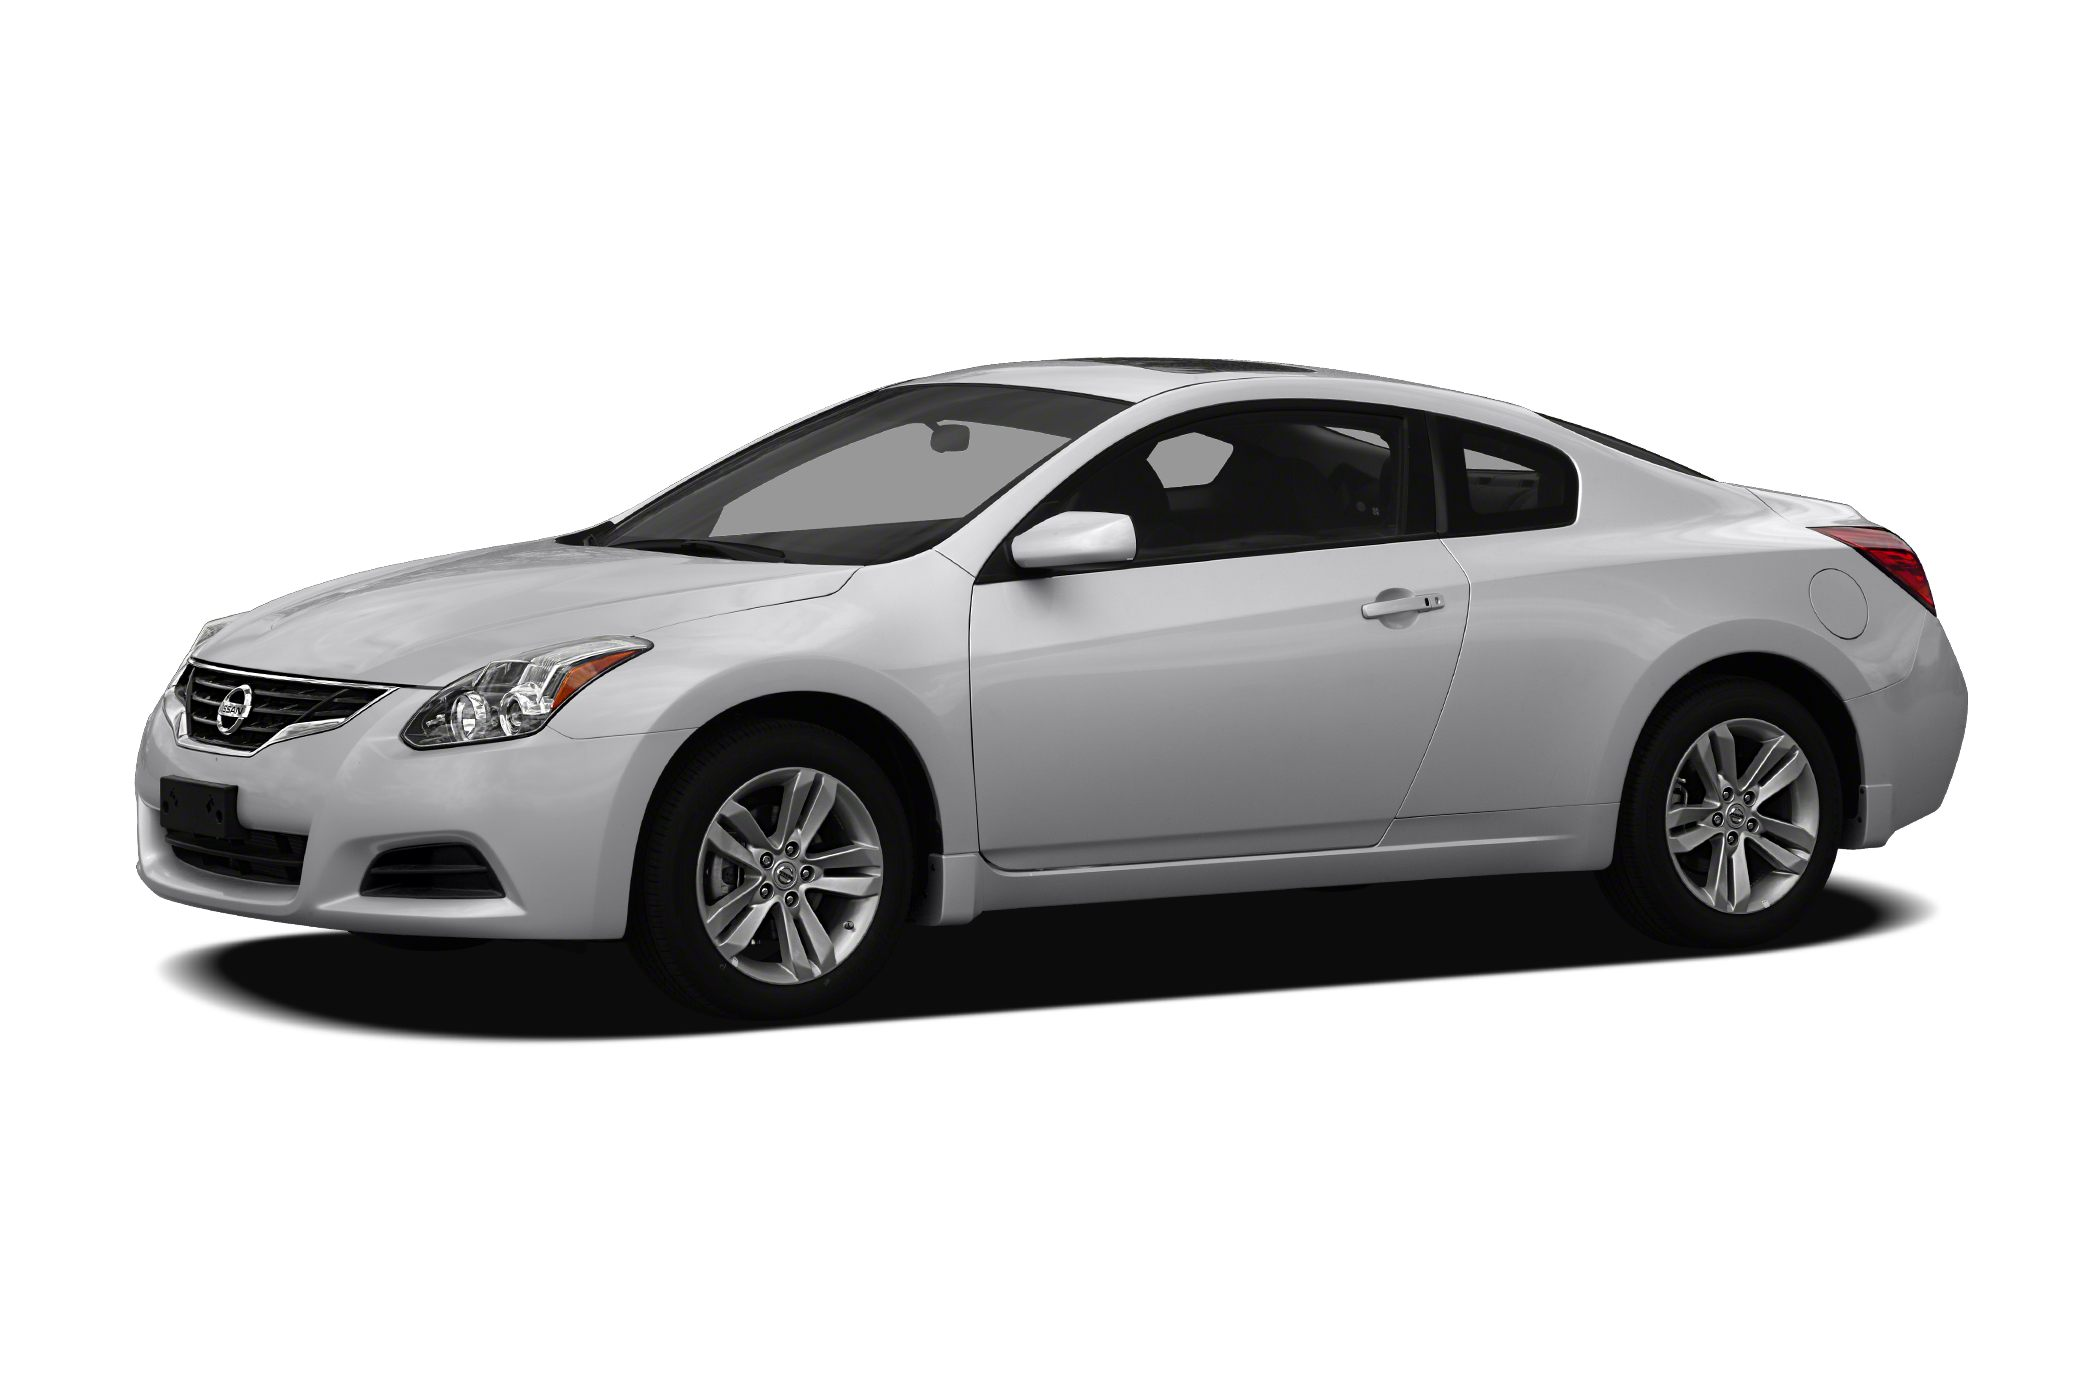 2011 Nissan Altima 25 S Vehicle Detailed Recent Oil Change and Passed Dealer Inspection No gam